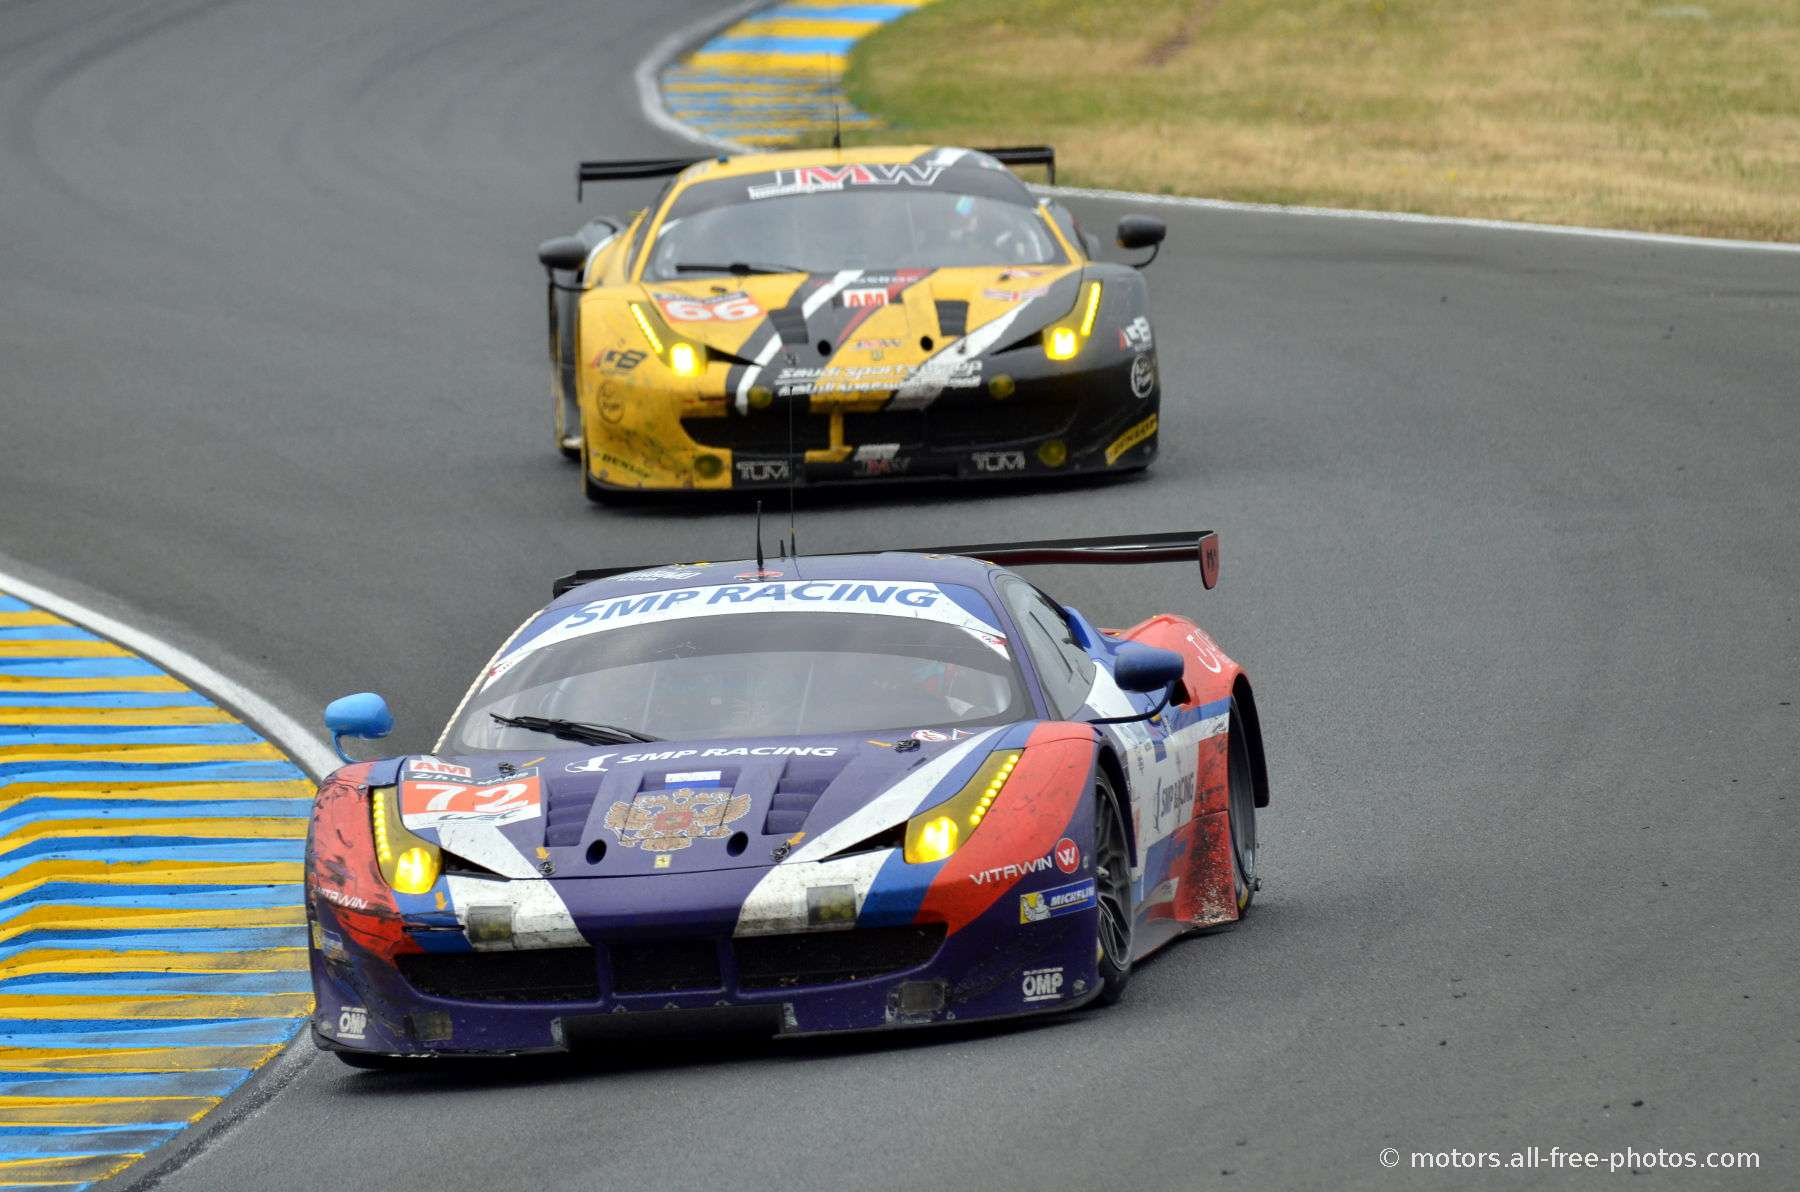 Ferrari F458 Italia - Team SMP Racing